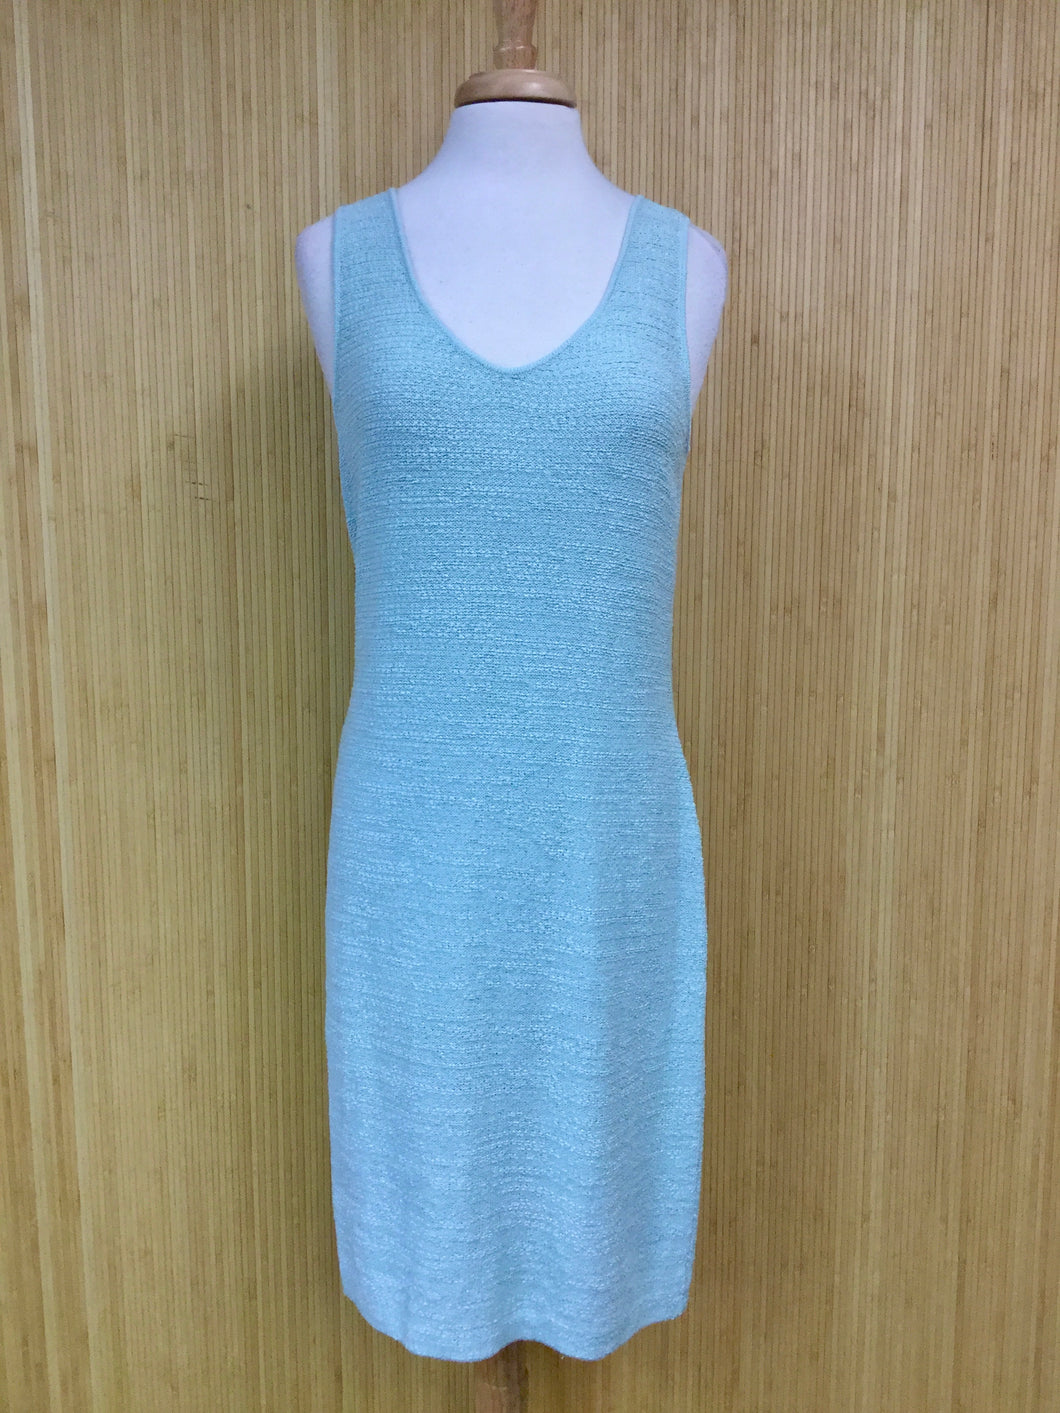 St. John Collection Knit Dress (M)